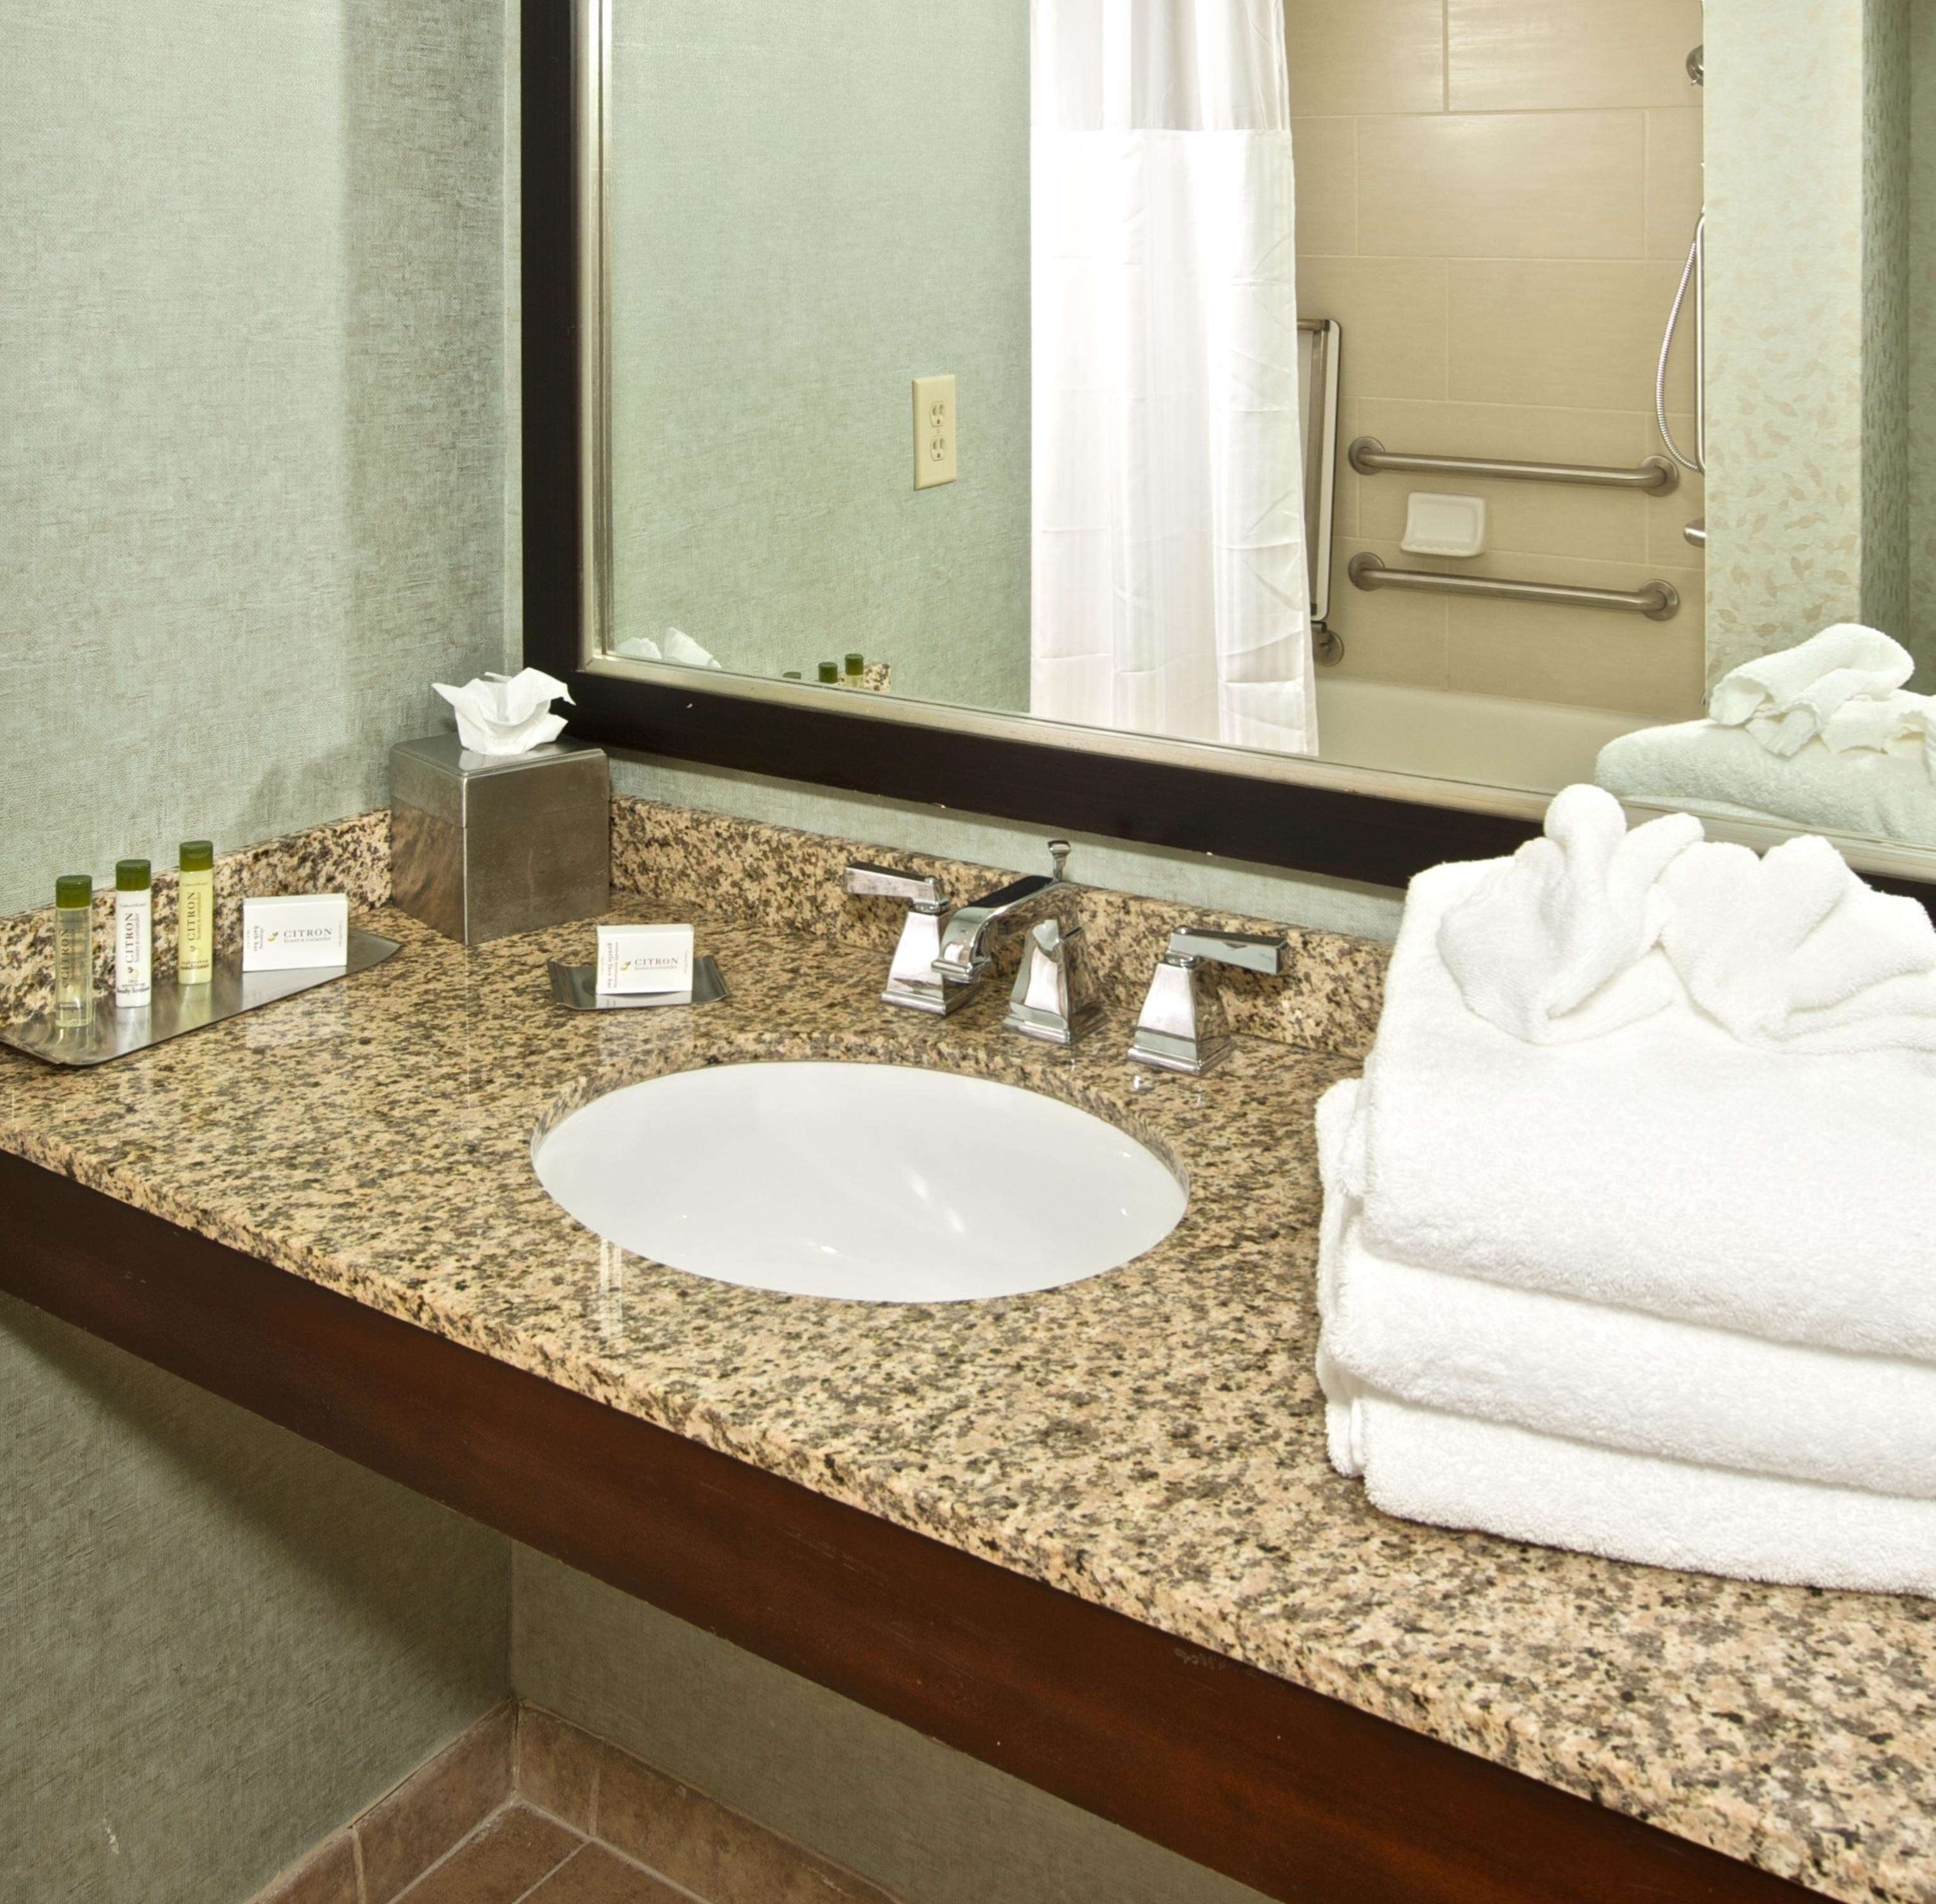 DoubleTree Suites by Hilton Hotel Raleigh - Durham image 16